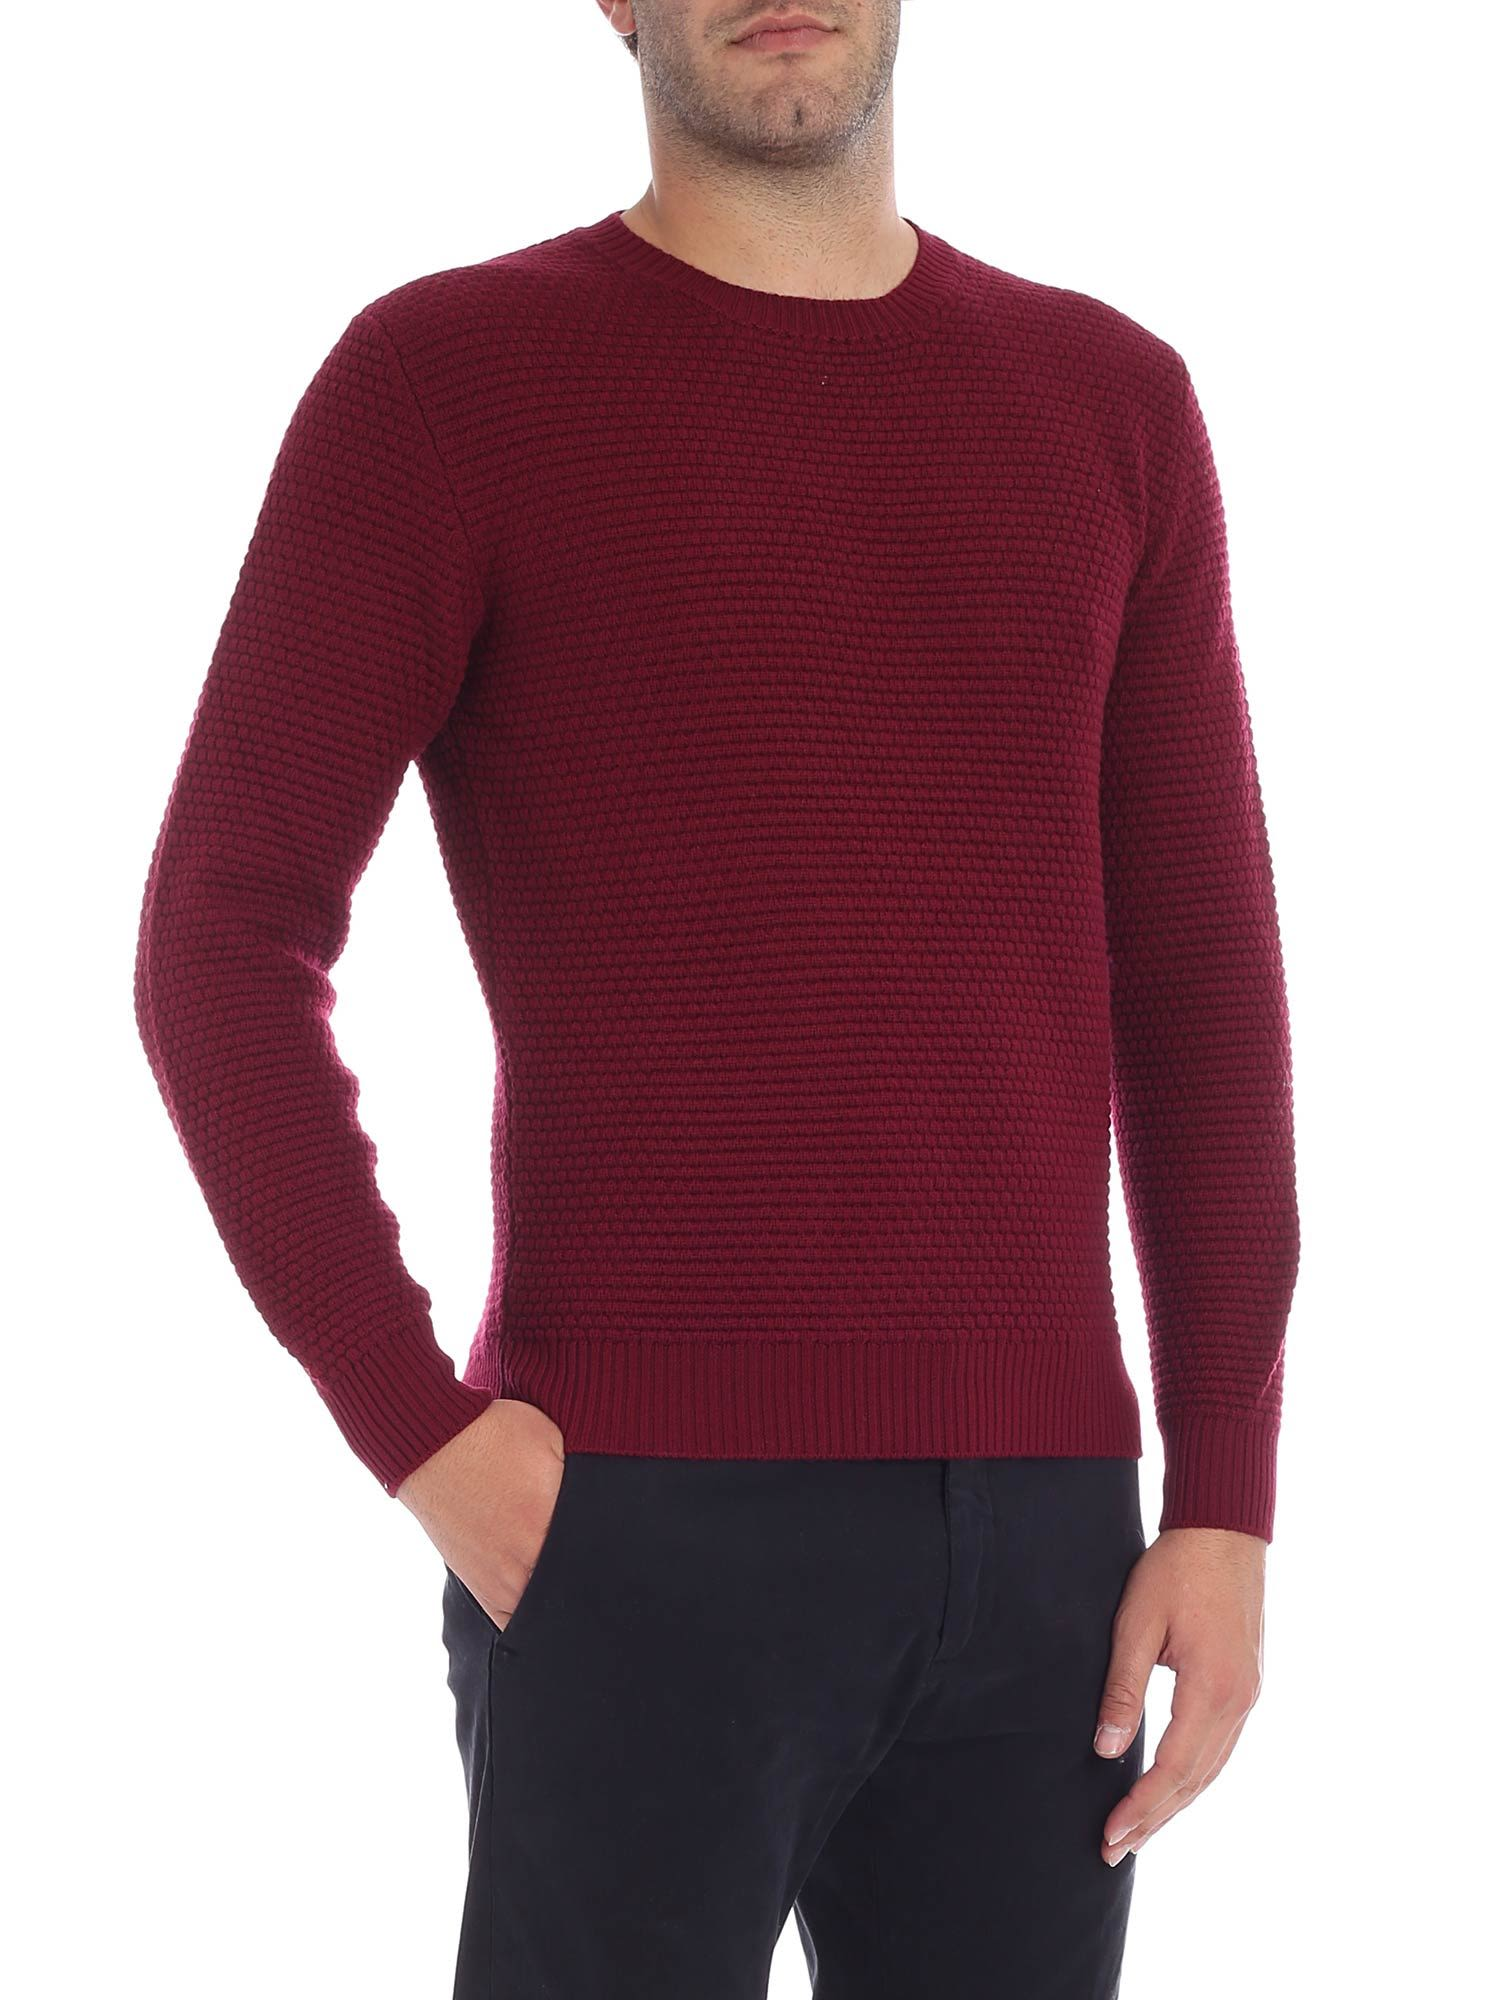 LUIGI BORRELLI Knitted Detail Jumper in Red